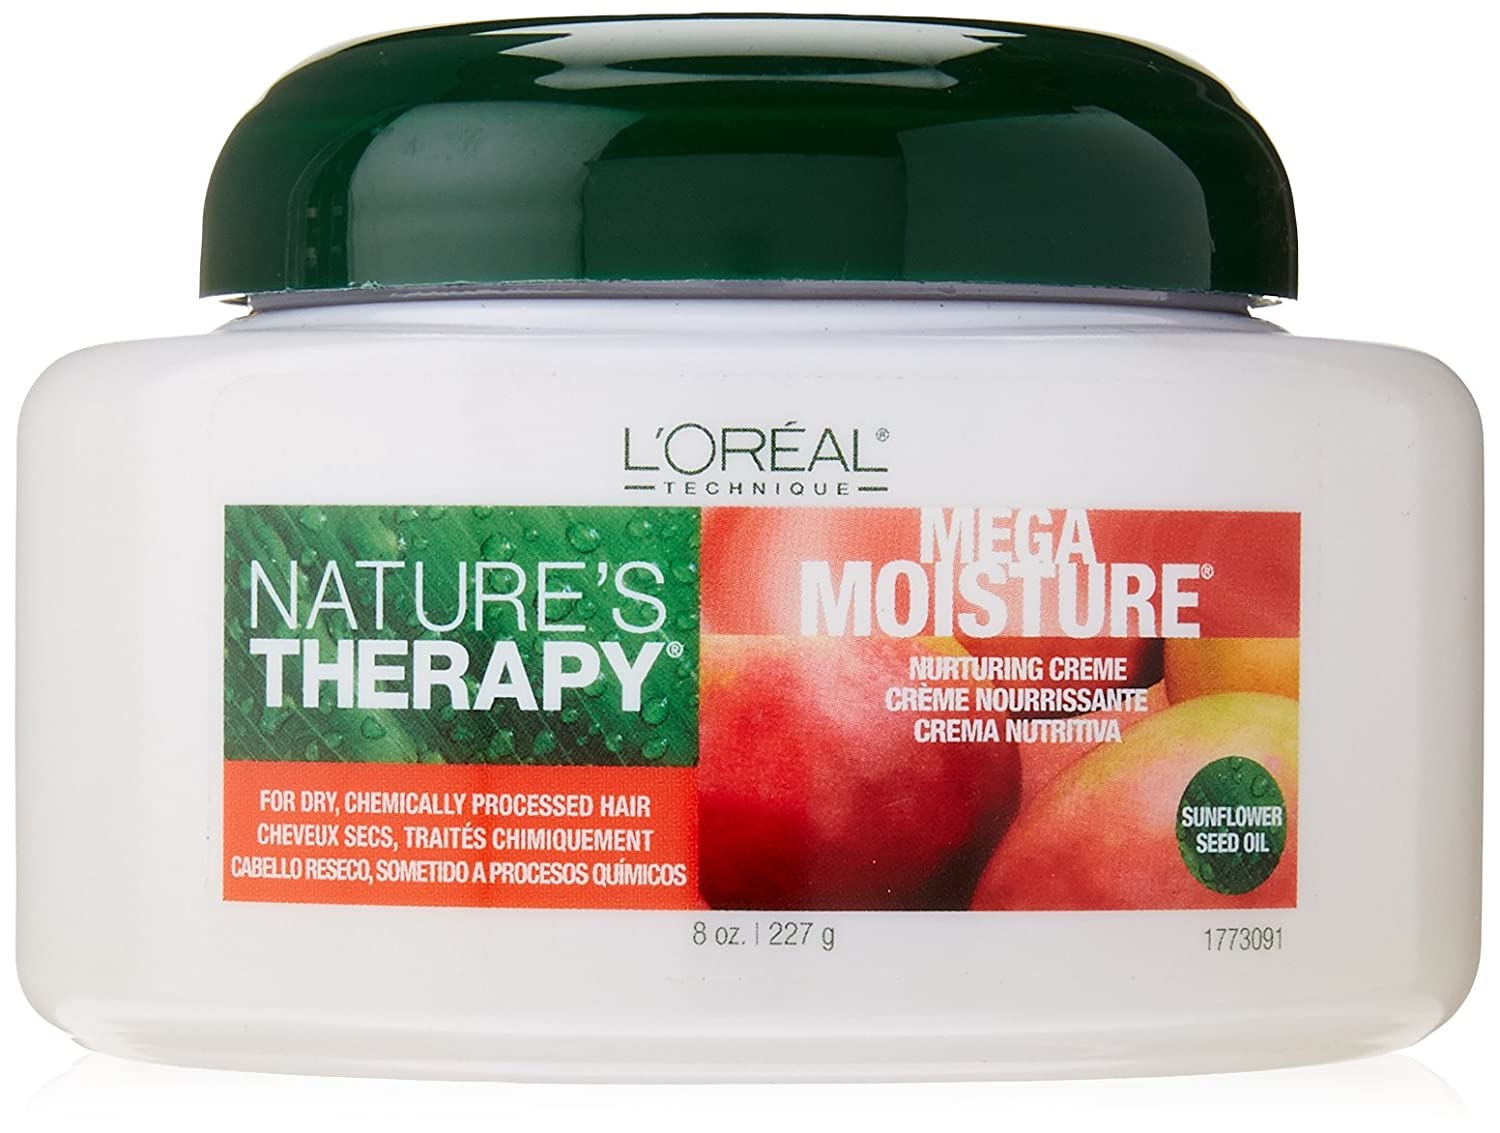 Amazon.com : LOreal Natures Therapy Mega Moisture Nurturing Creme, 8 Ounce : Standard Hair Conditioners : Beauty